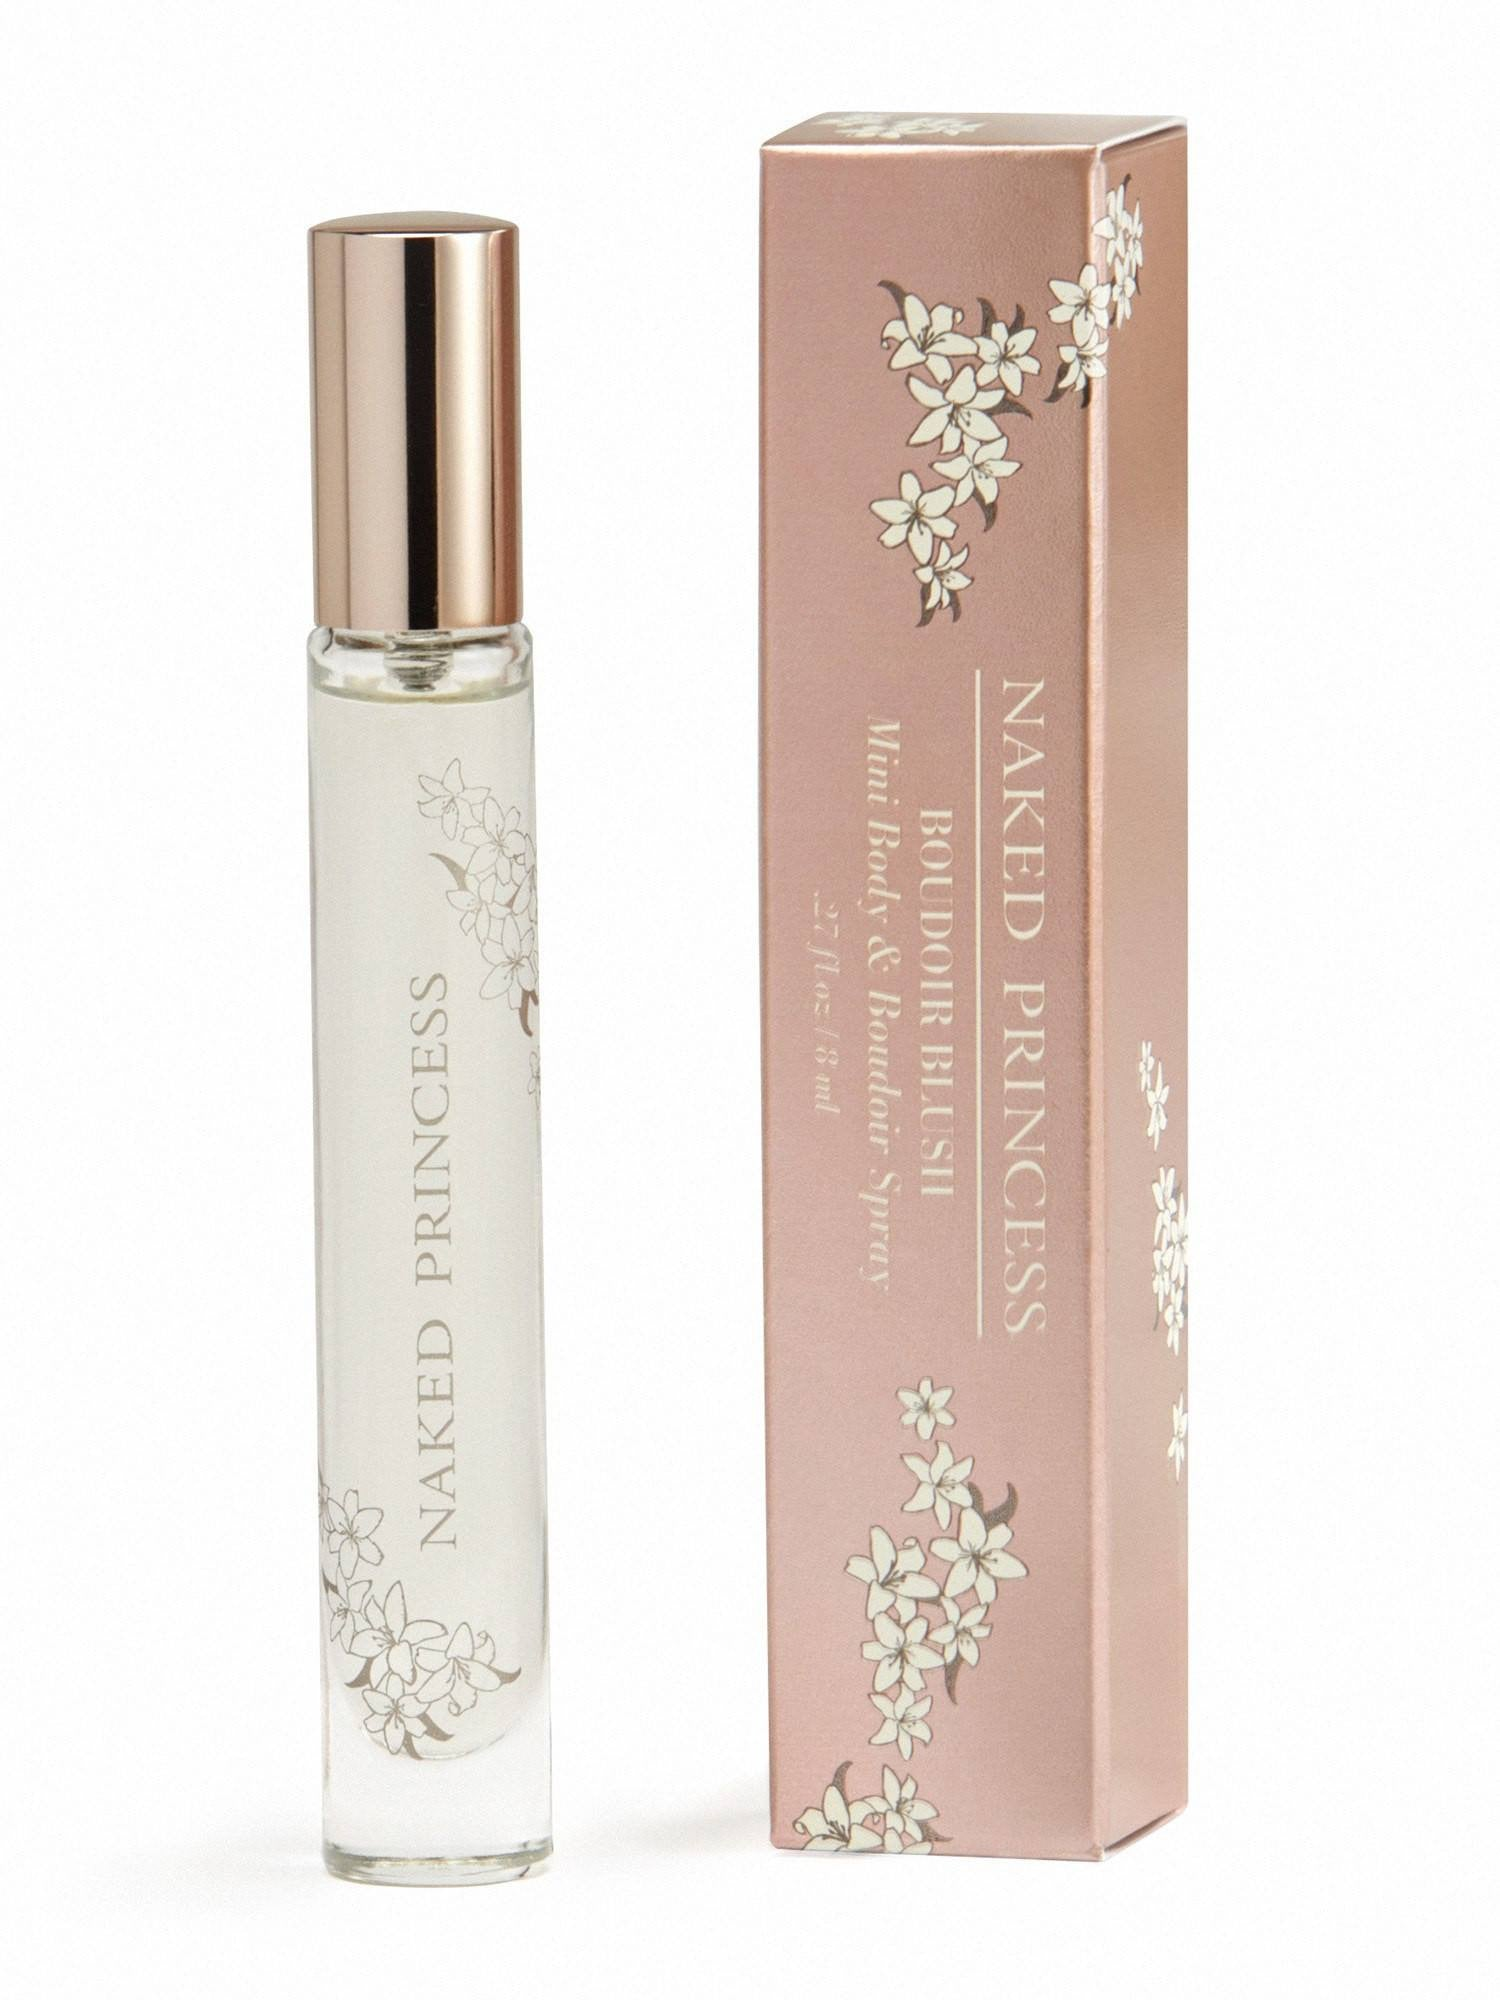 8ml Body & Boudoir Spray - Boudoir Blush Fragrance by Le Marché by NP